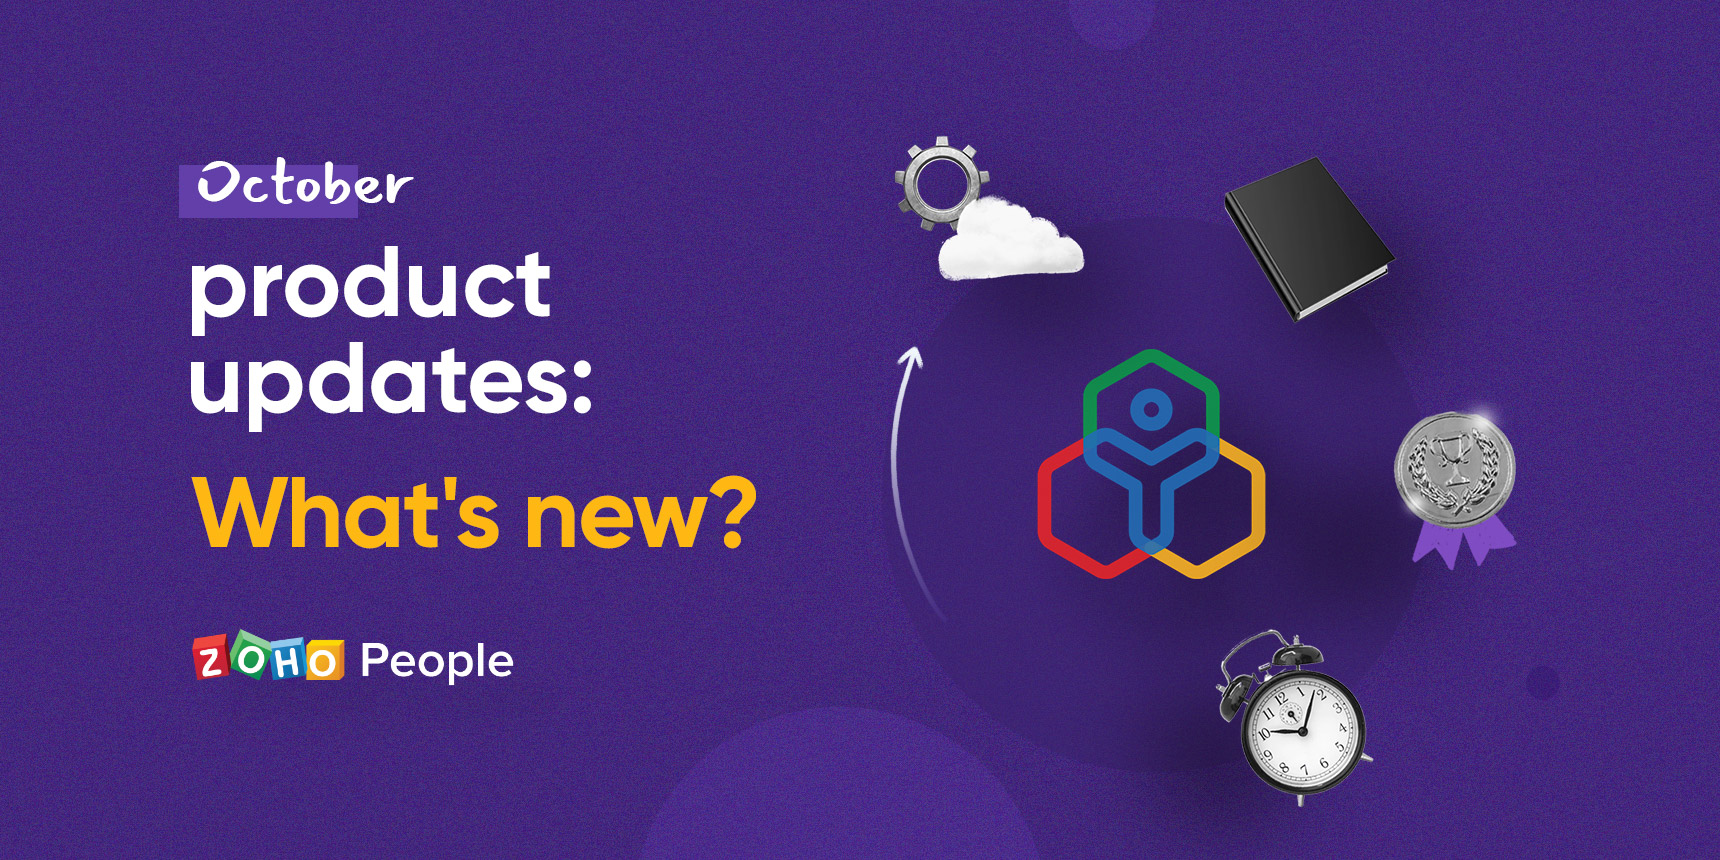 October product updates: What's new in Zoho People?